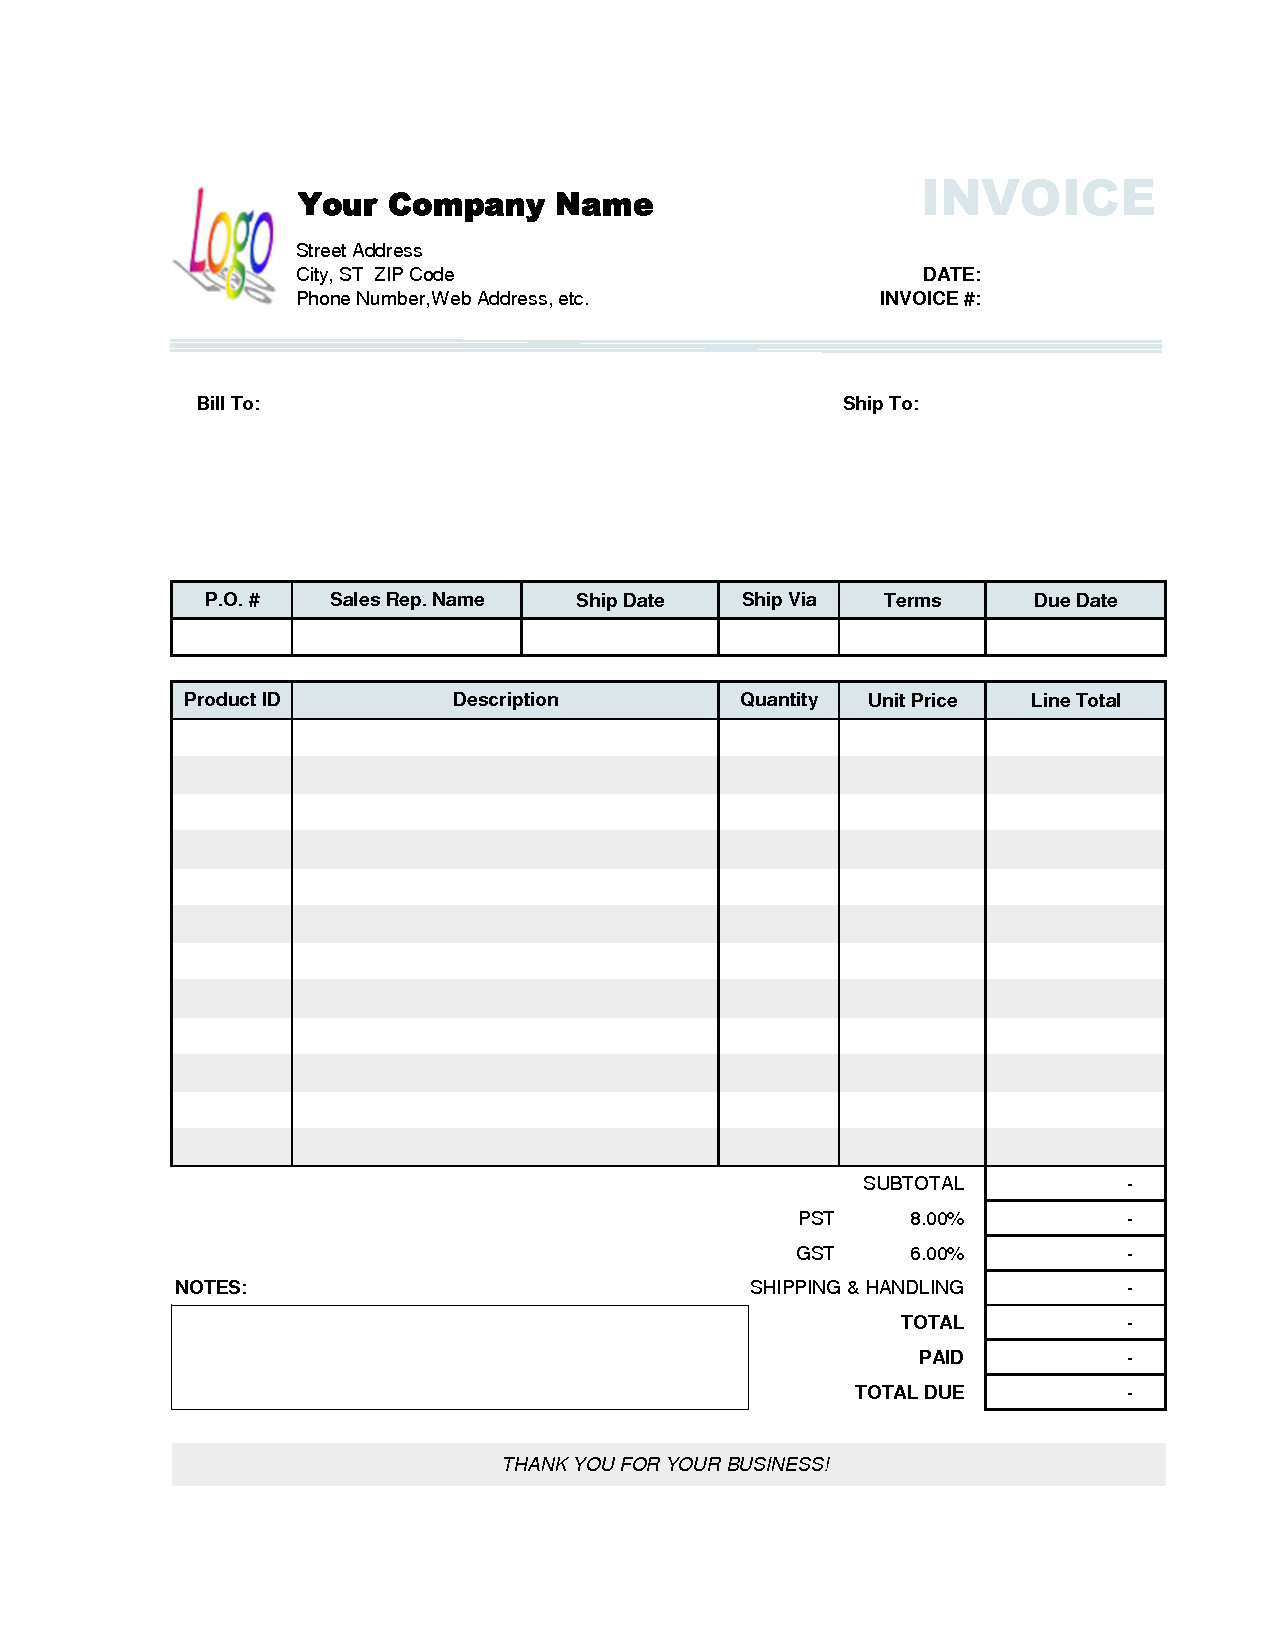 Exel Invoice Template Invoice Template Excel 2010 Invoice Sample Template